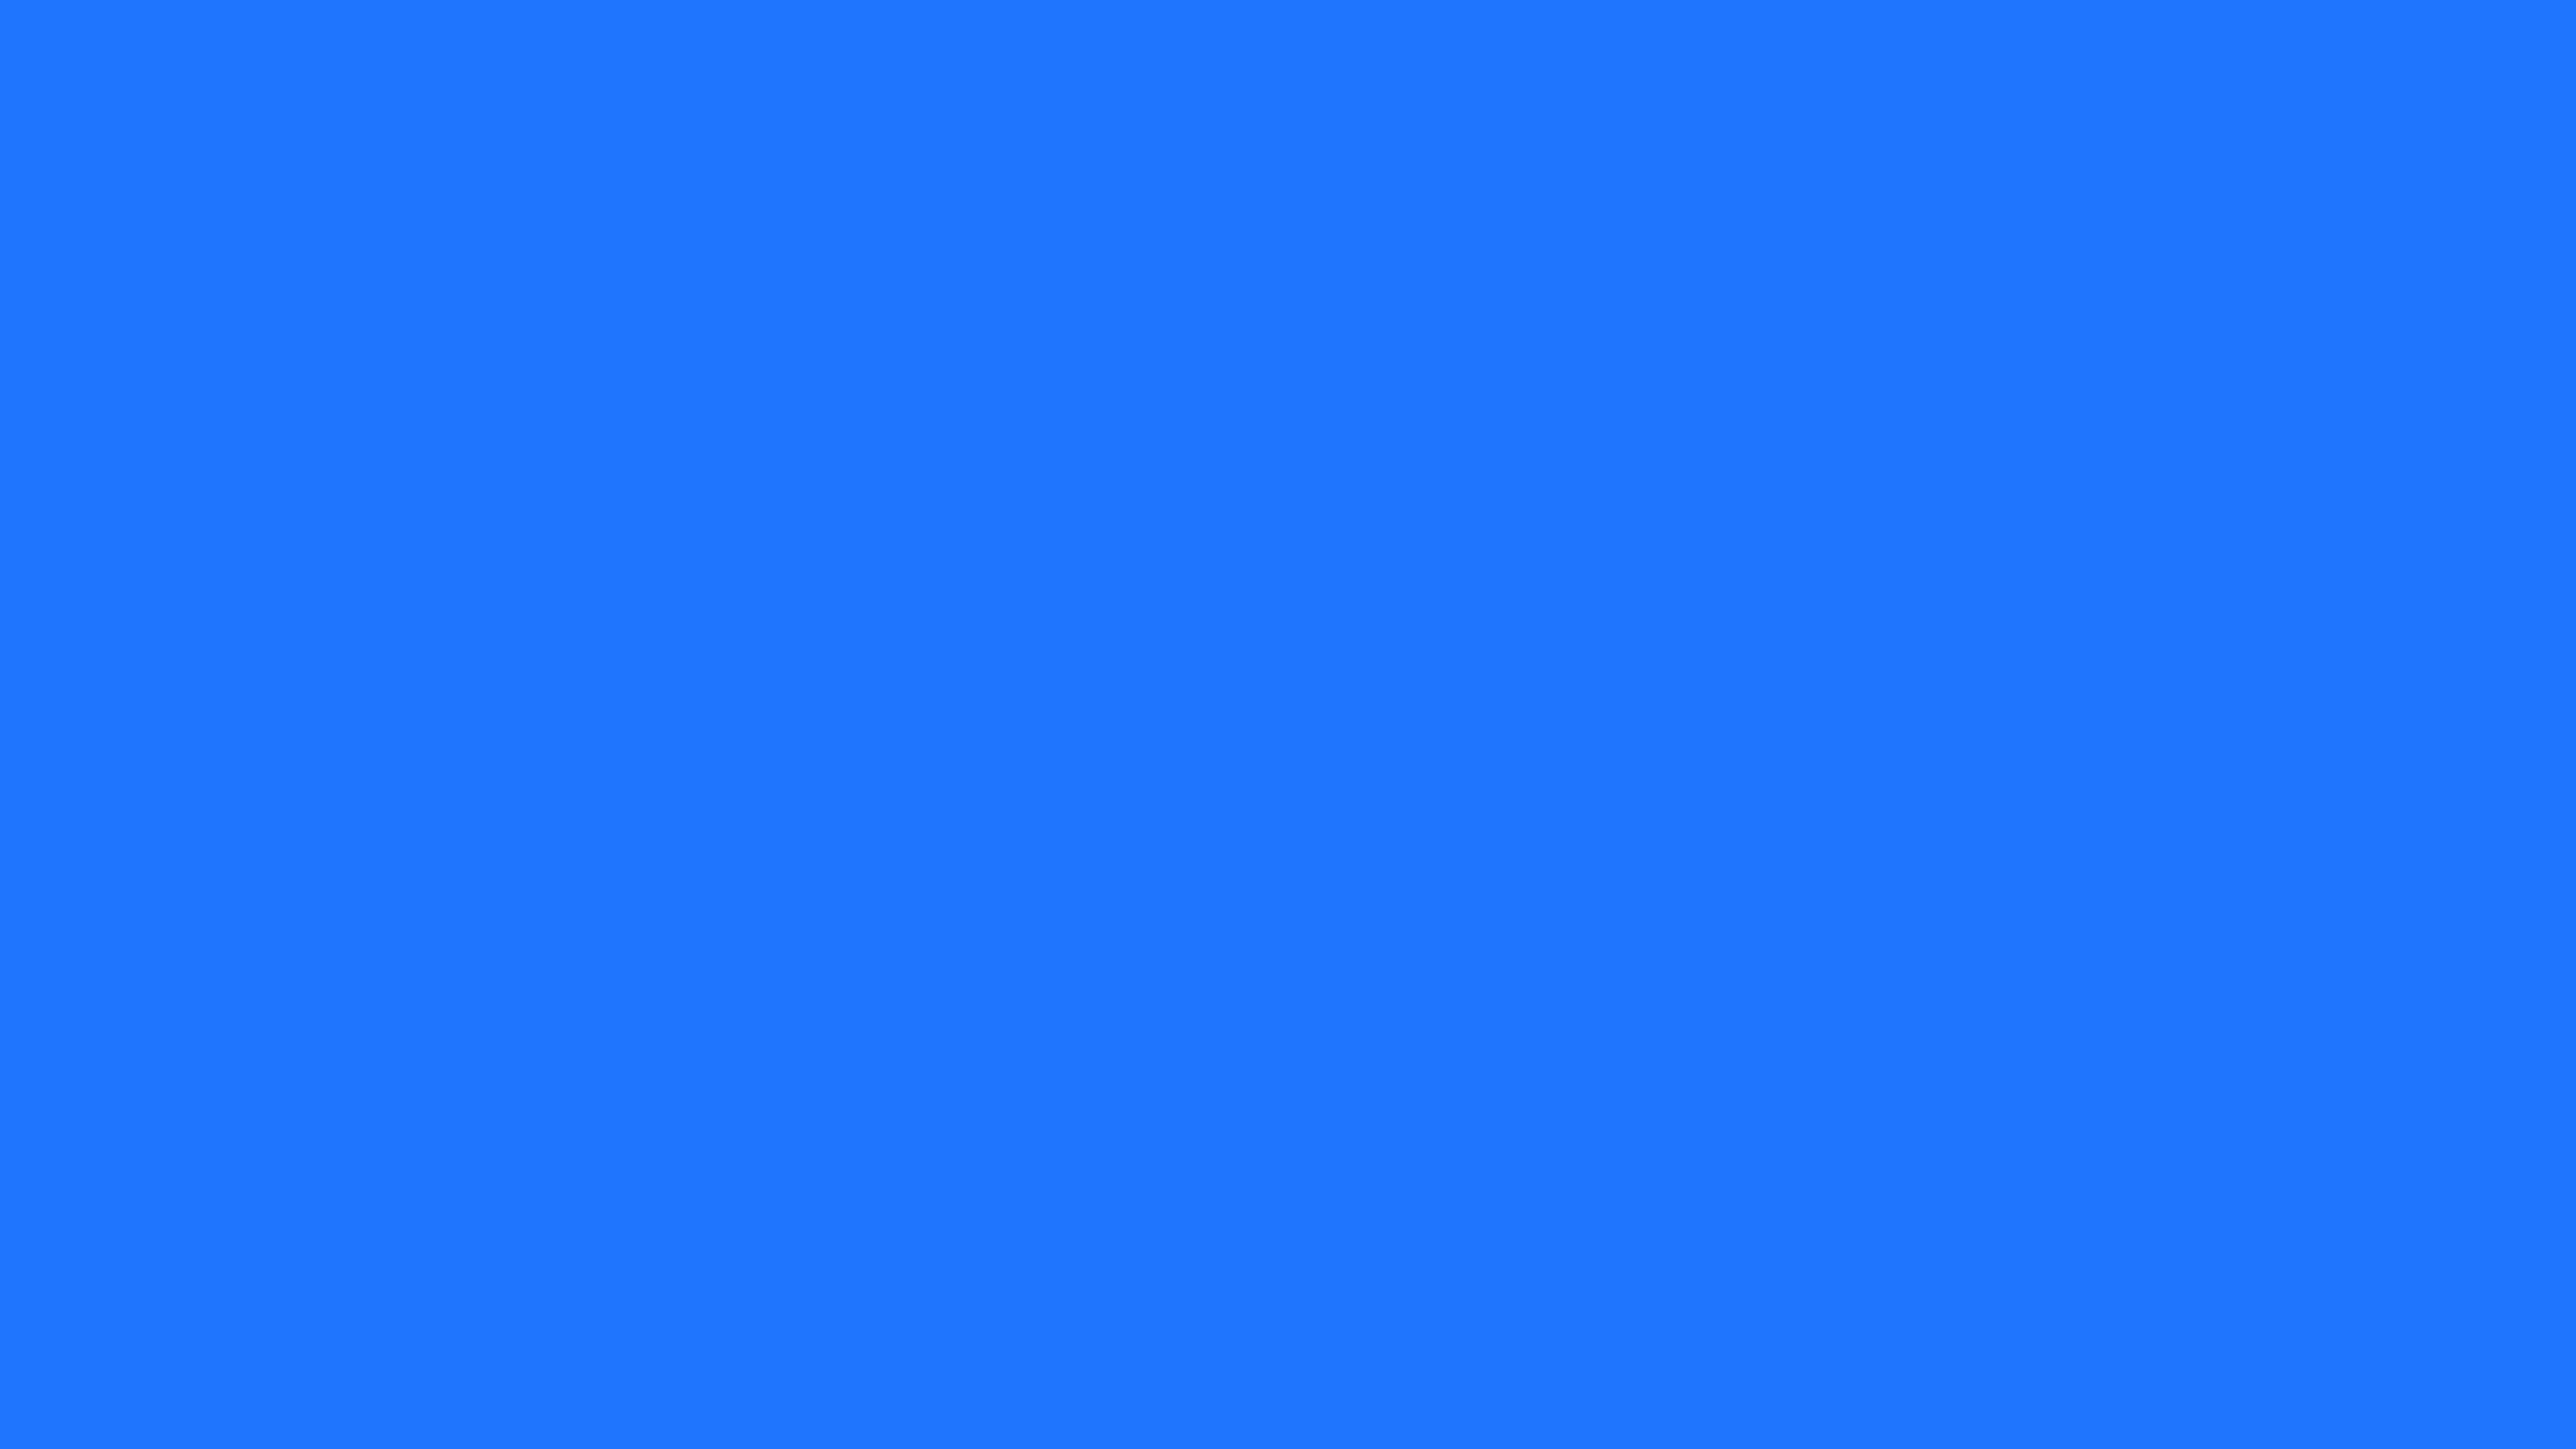 4096x2304 Blue Crayola Solid Color Background